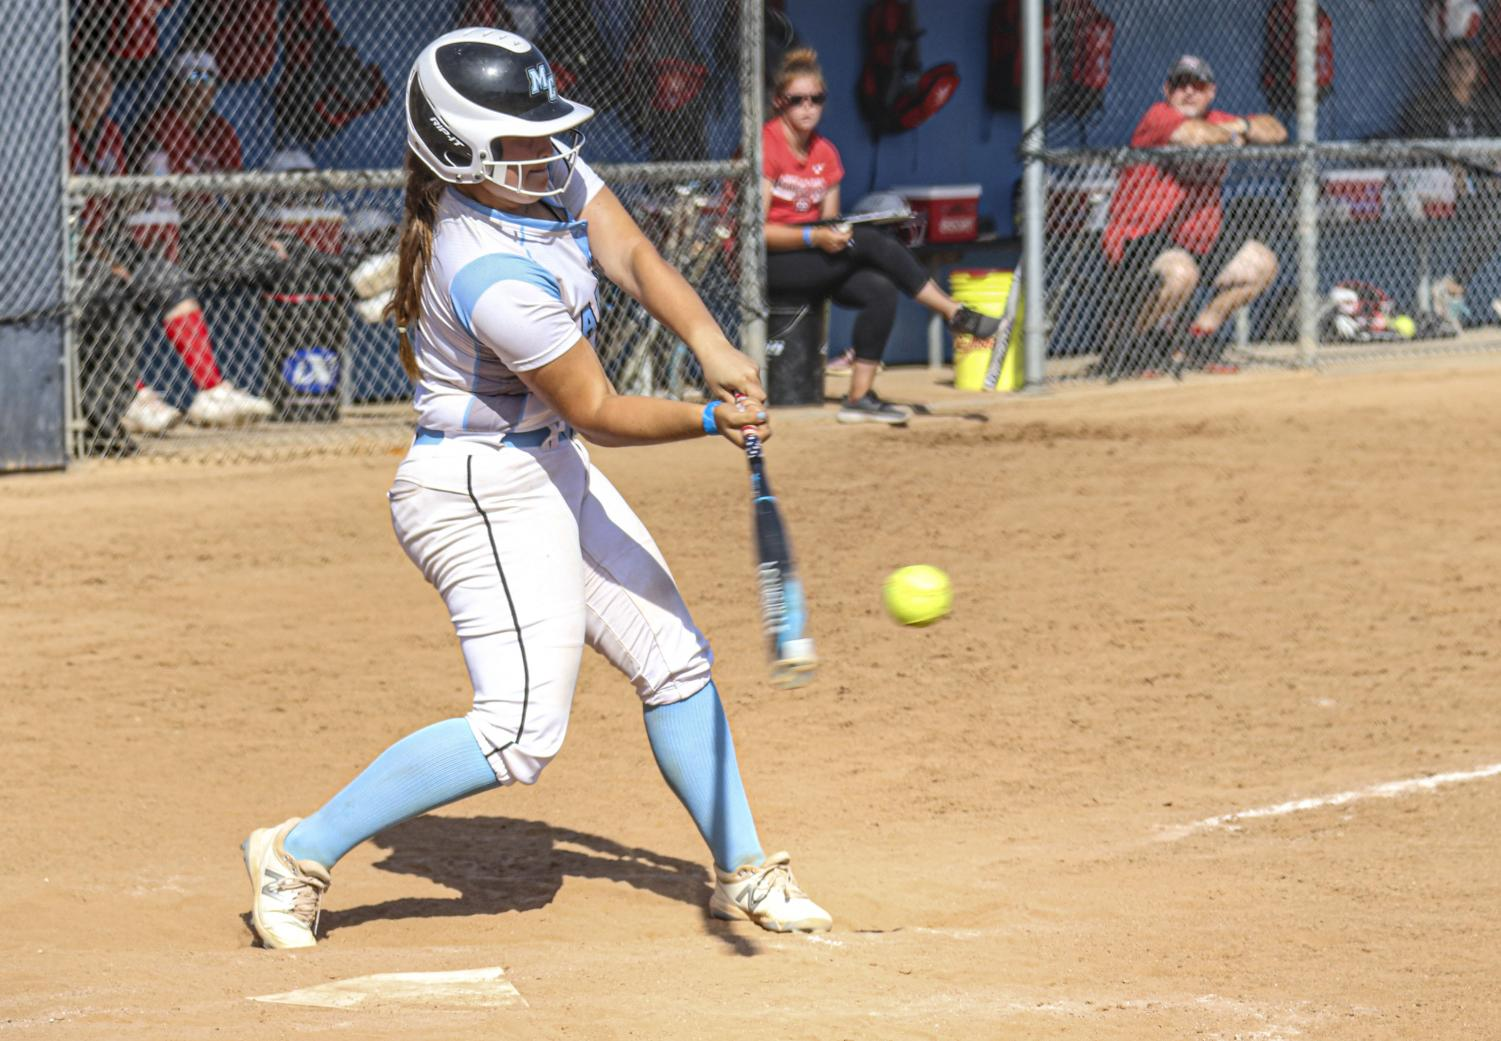 First baseman Ylse Prieto makes contact with a pitch during Moorpark's second home game of a doubleheader versus Bakersfield College on Saturday, May 8, 2021.